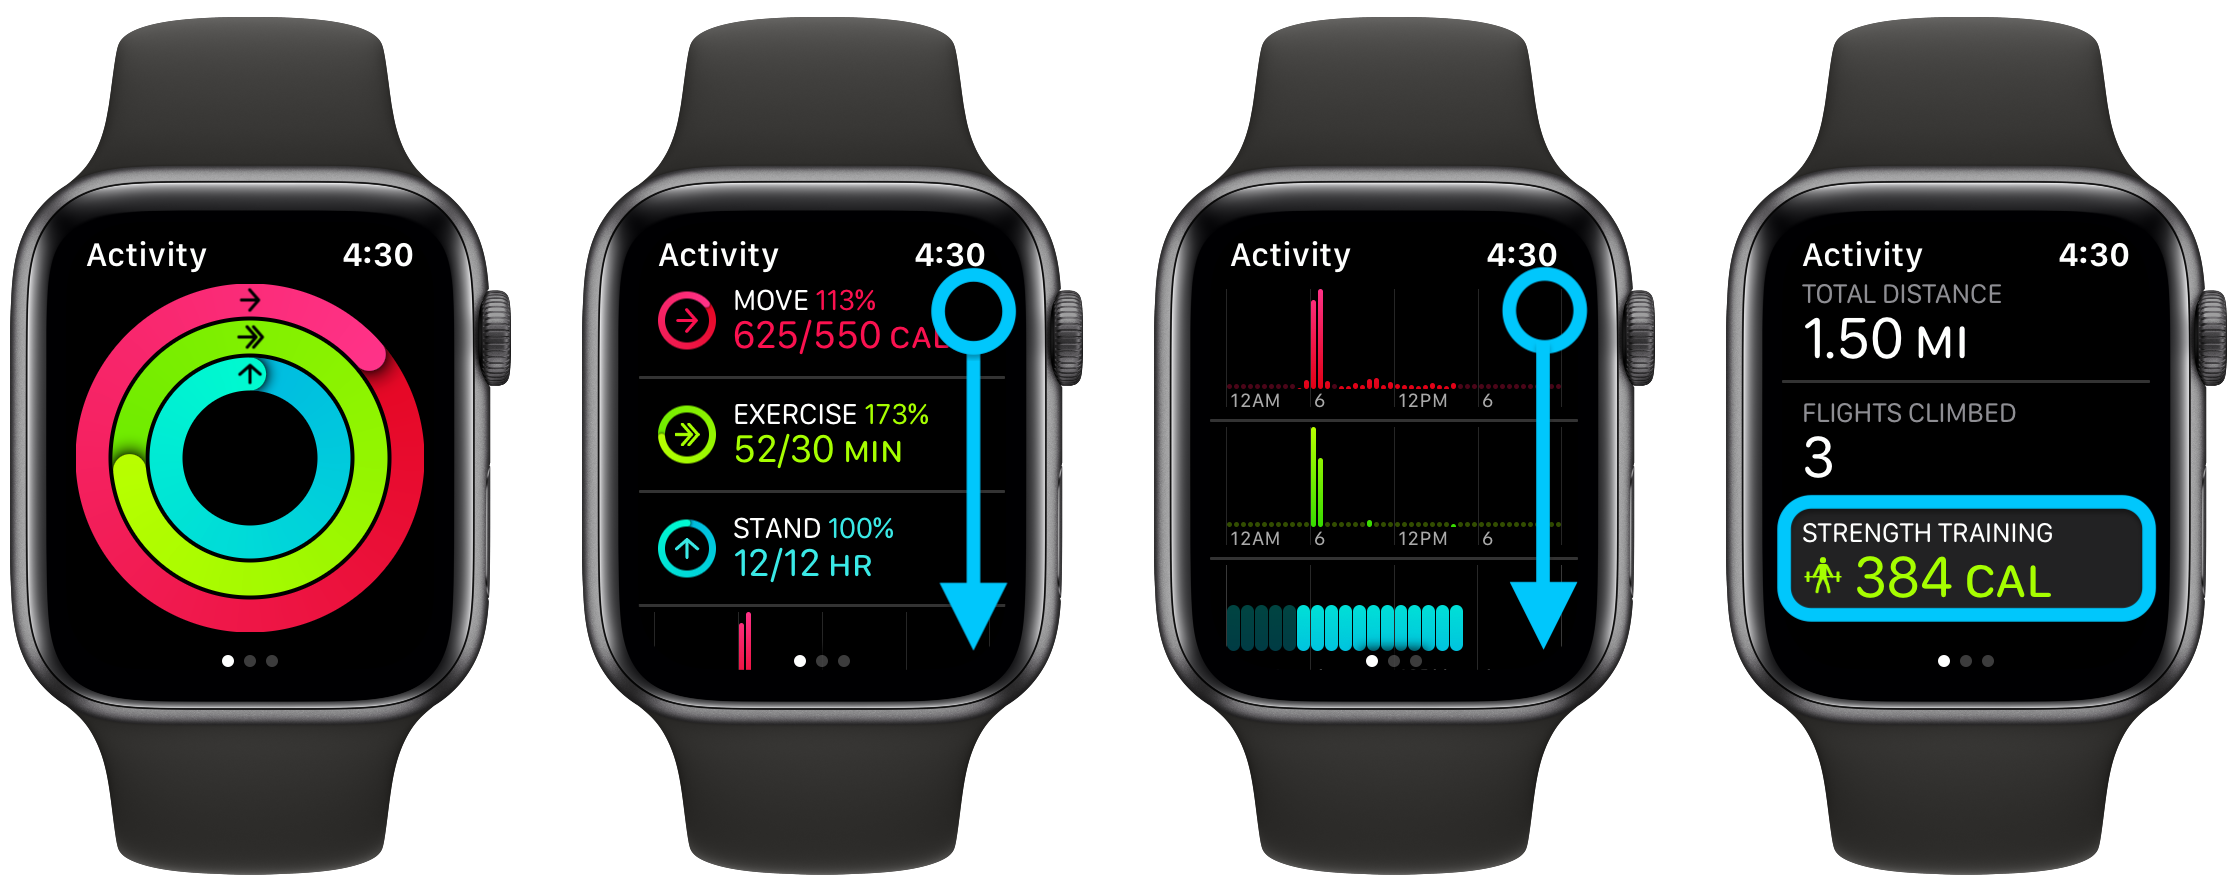 Apple Watch how to see workout history walkthrough 1